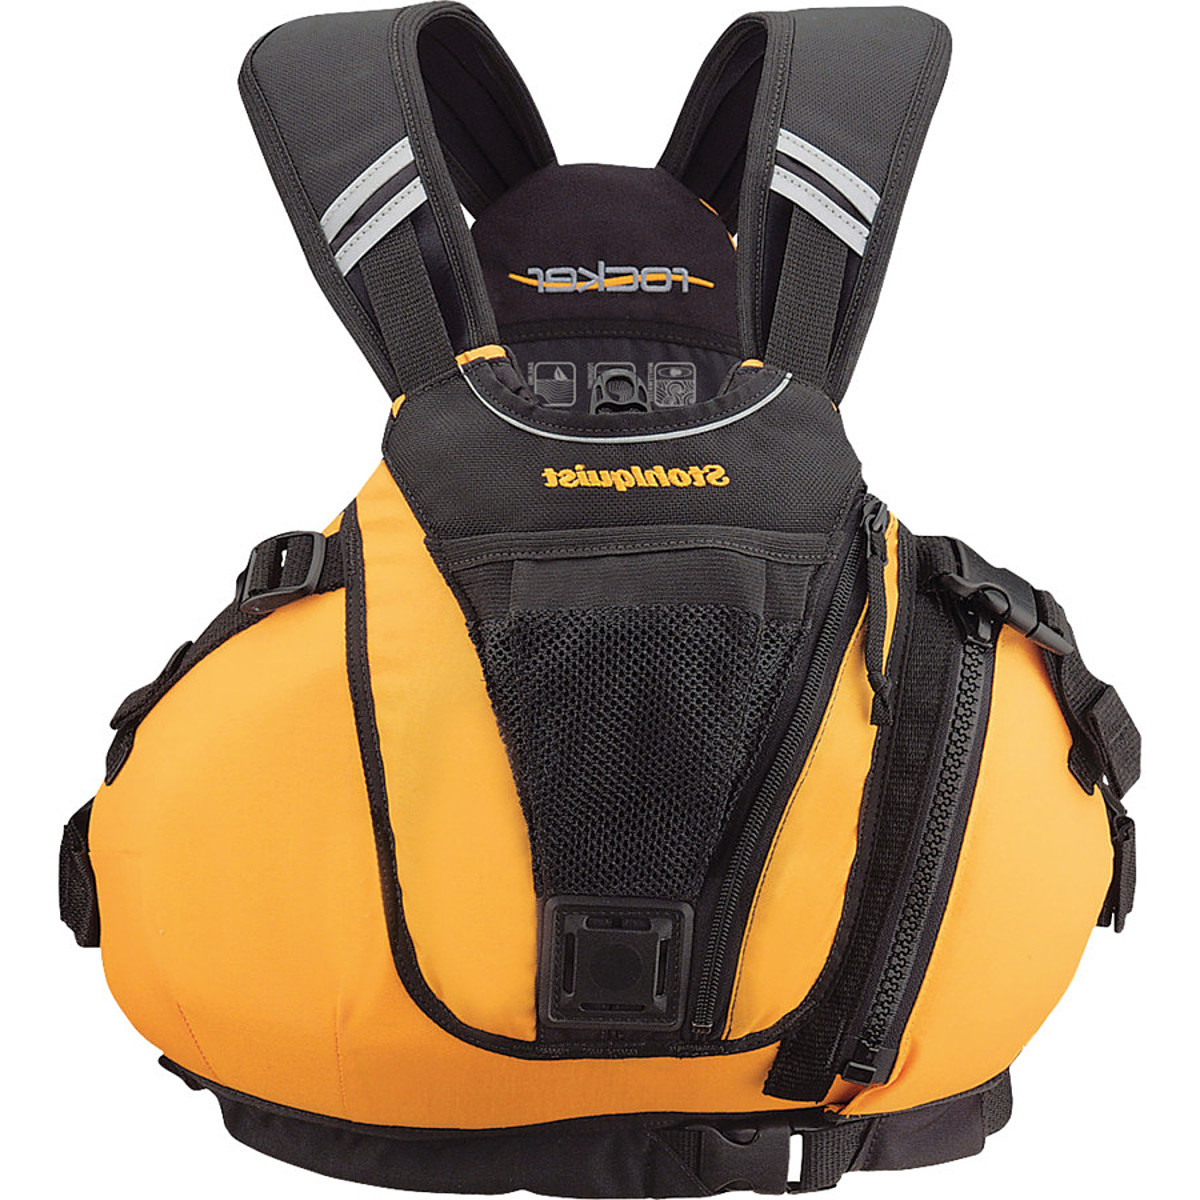 Stohlquist Rocker Personal Flotation Device - Men's